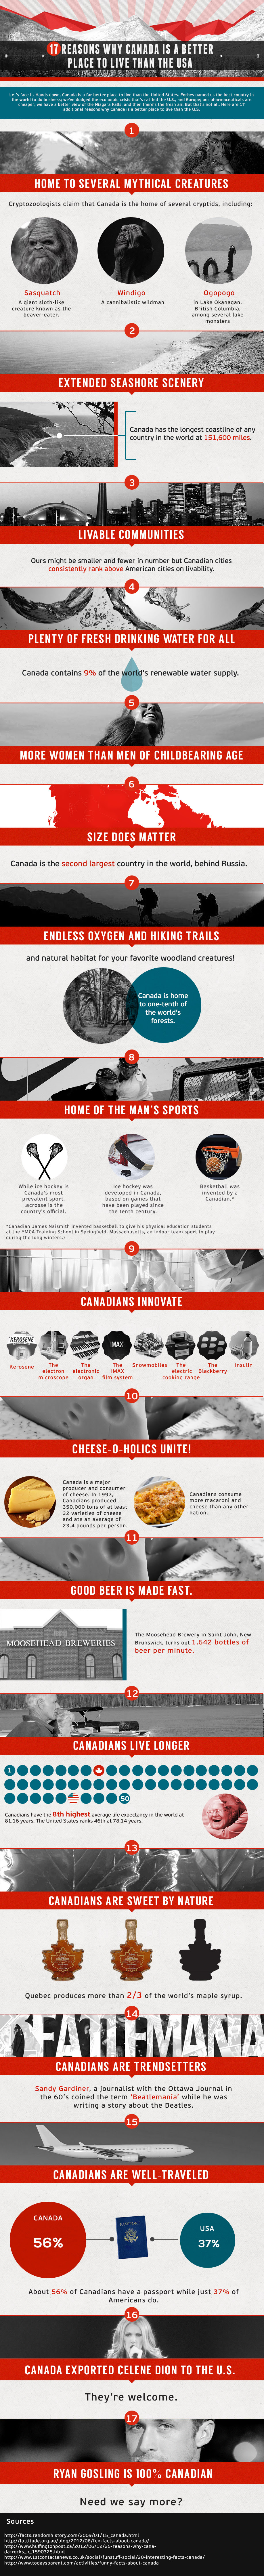 17 Reasons Why Canada is a Better Place to Live than the USA [Infographic] - Via WebHostingReviews.ca